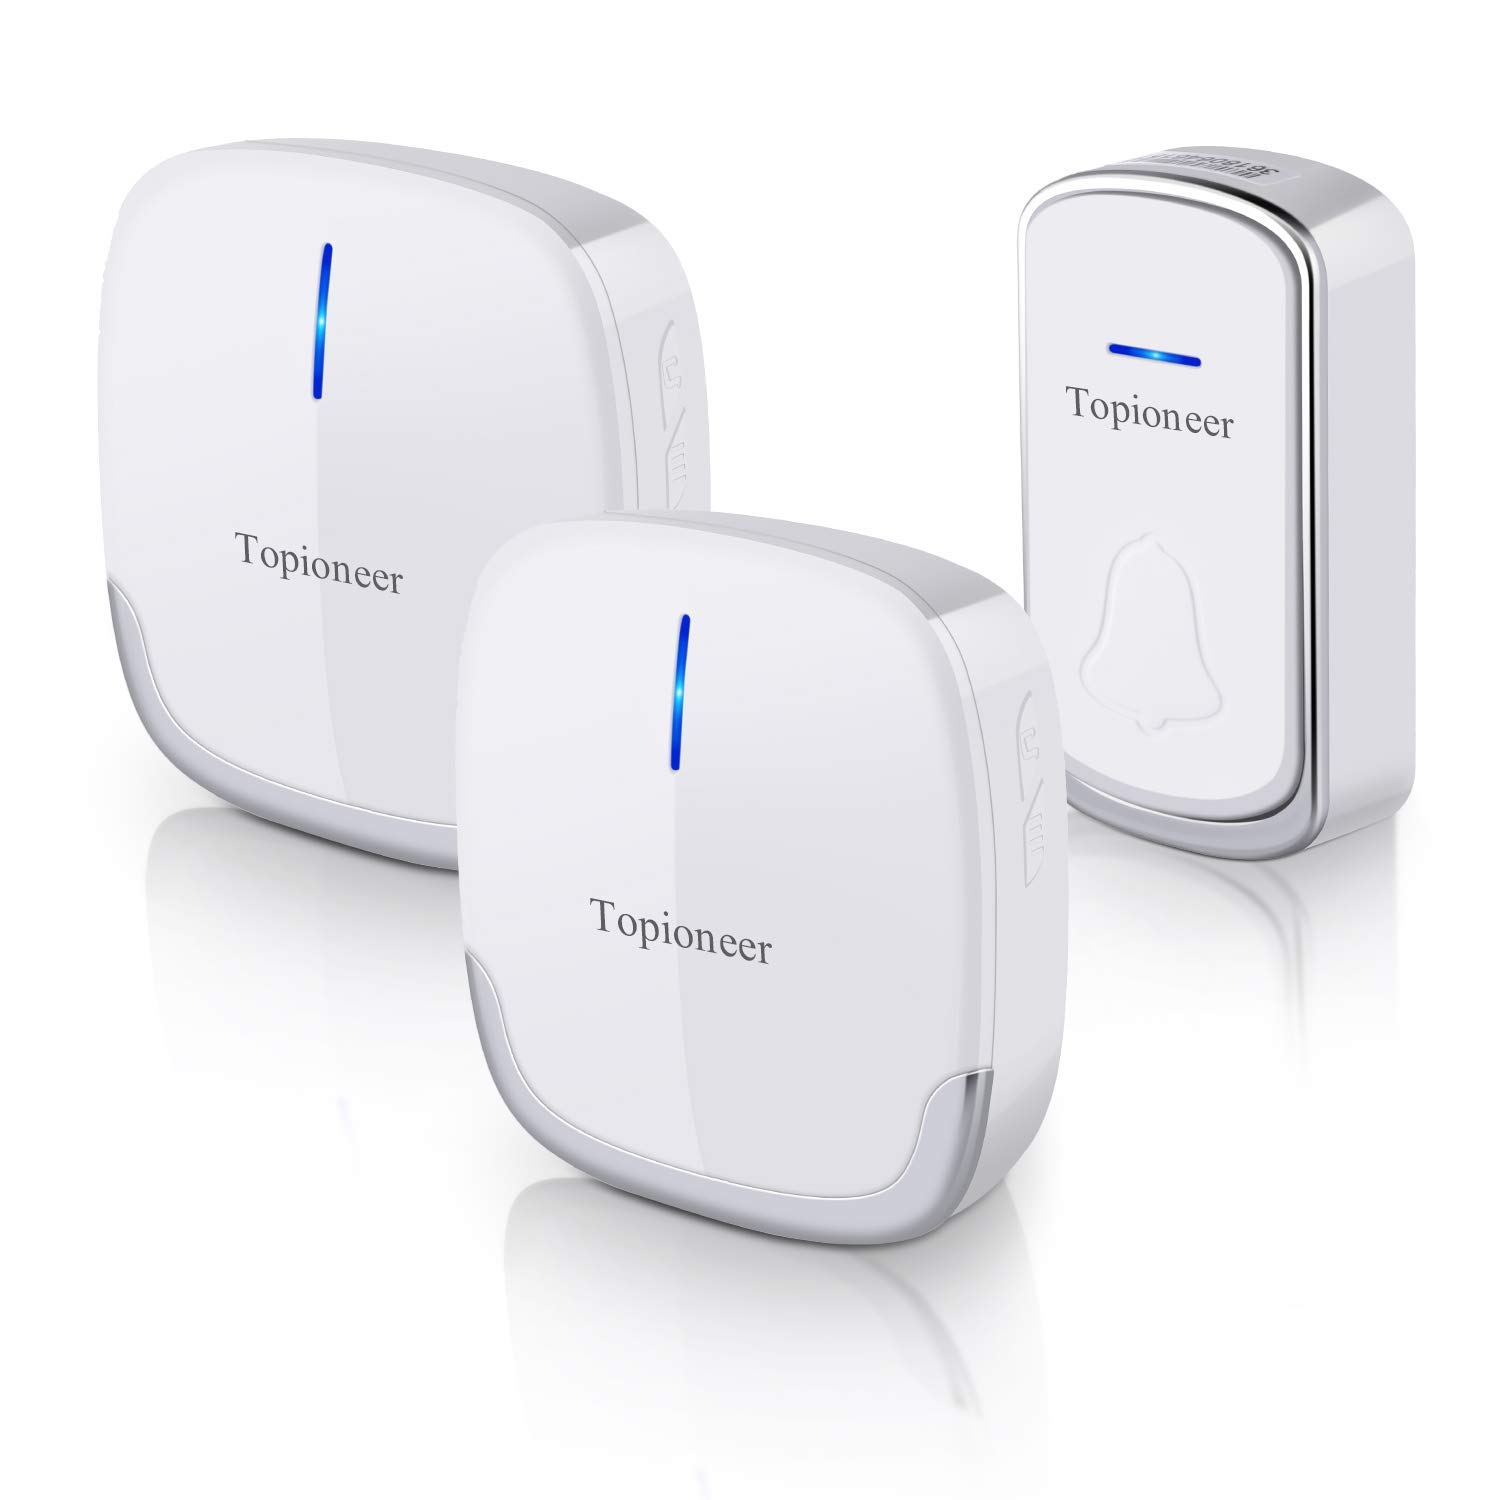 Wireless Doorbell, Topioneer Waterproof Door Chime Kit Operating at 1000 FT with 2 plug-in Receivers and 1 Remote Buttons, 36 Chimes, 4 Levels Volume for Choice(White)